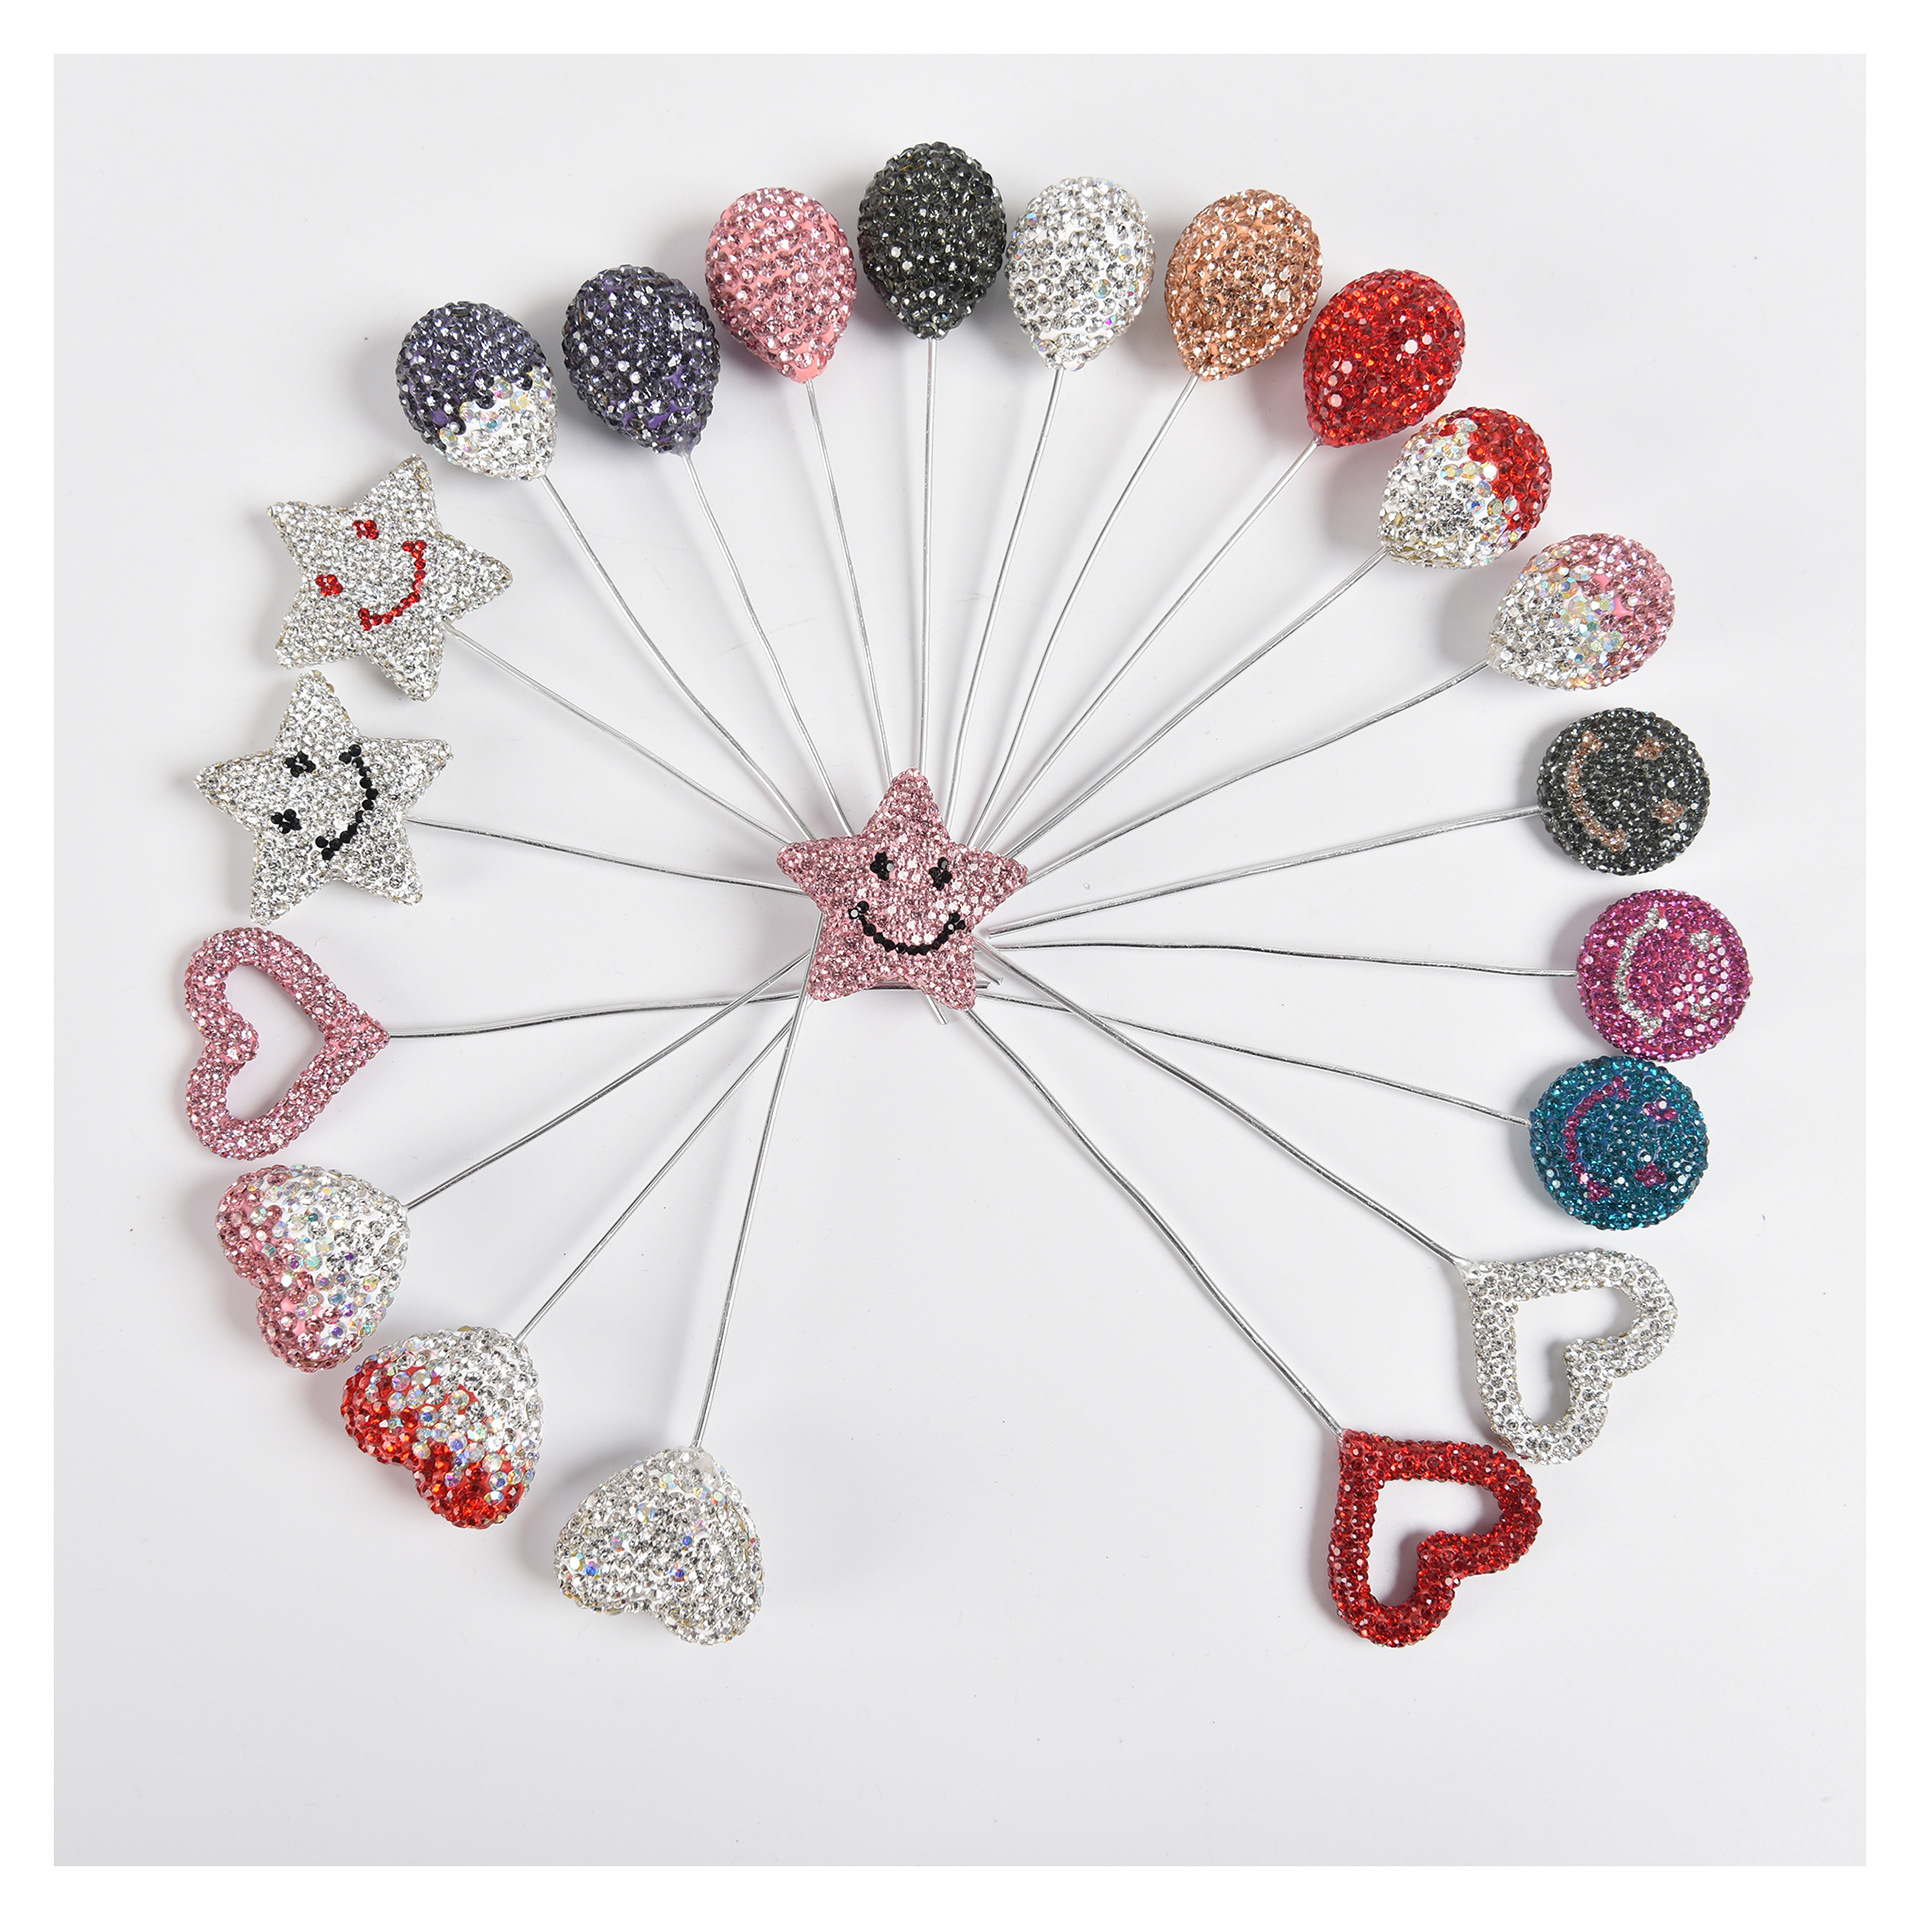 Glimmering Rhinestone Small Round Shape Car Ornaments for Travelling